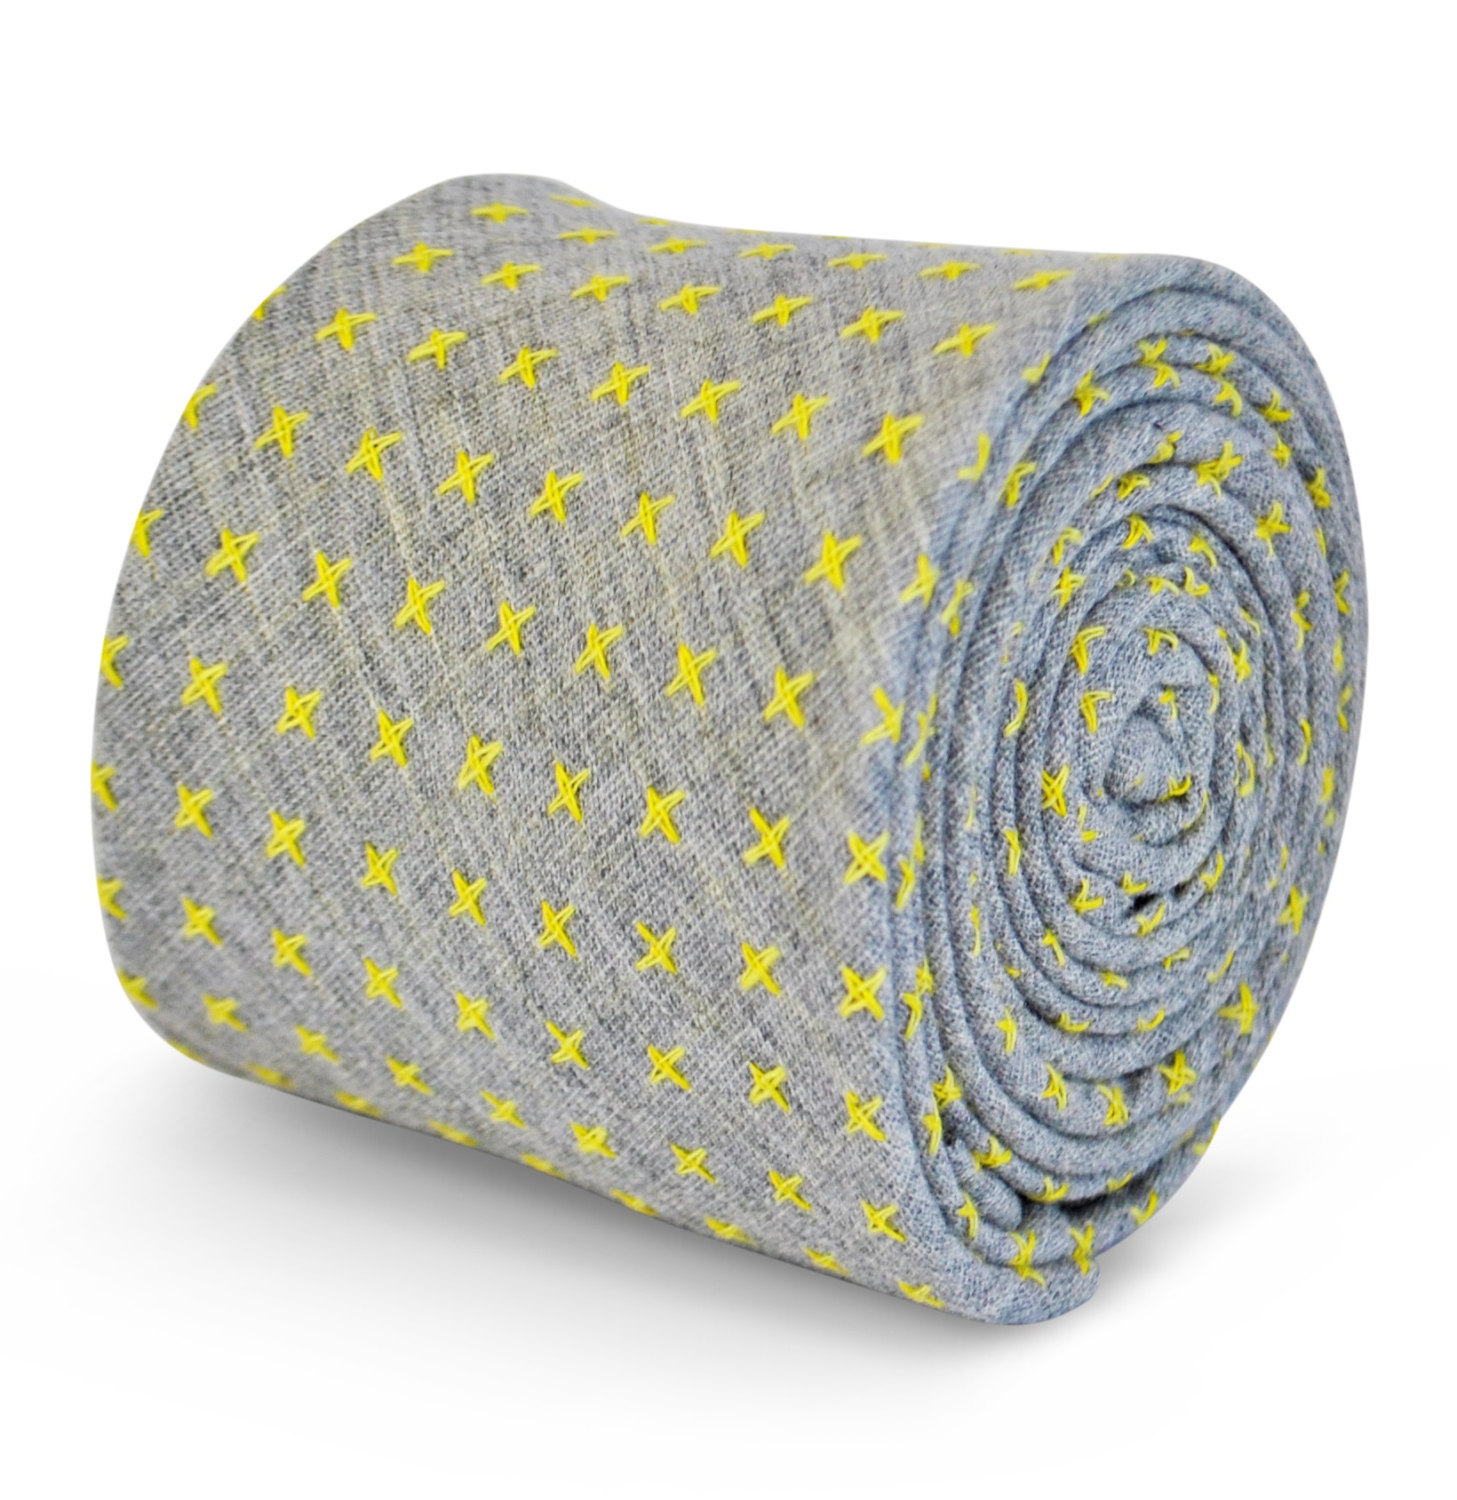 Frederick Thomas 100% cotton tie in grey with yellow cross pattern FT3108